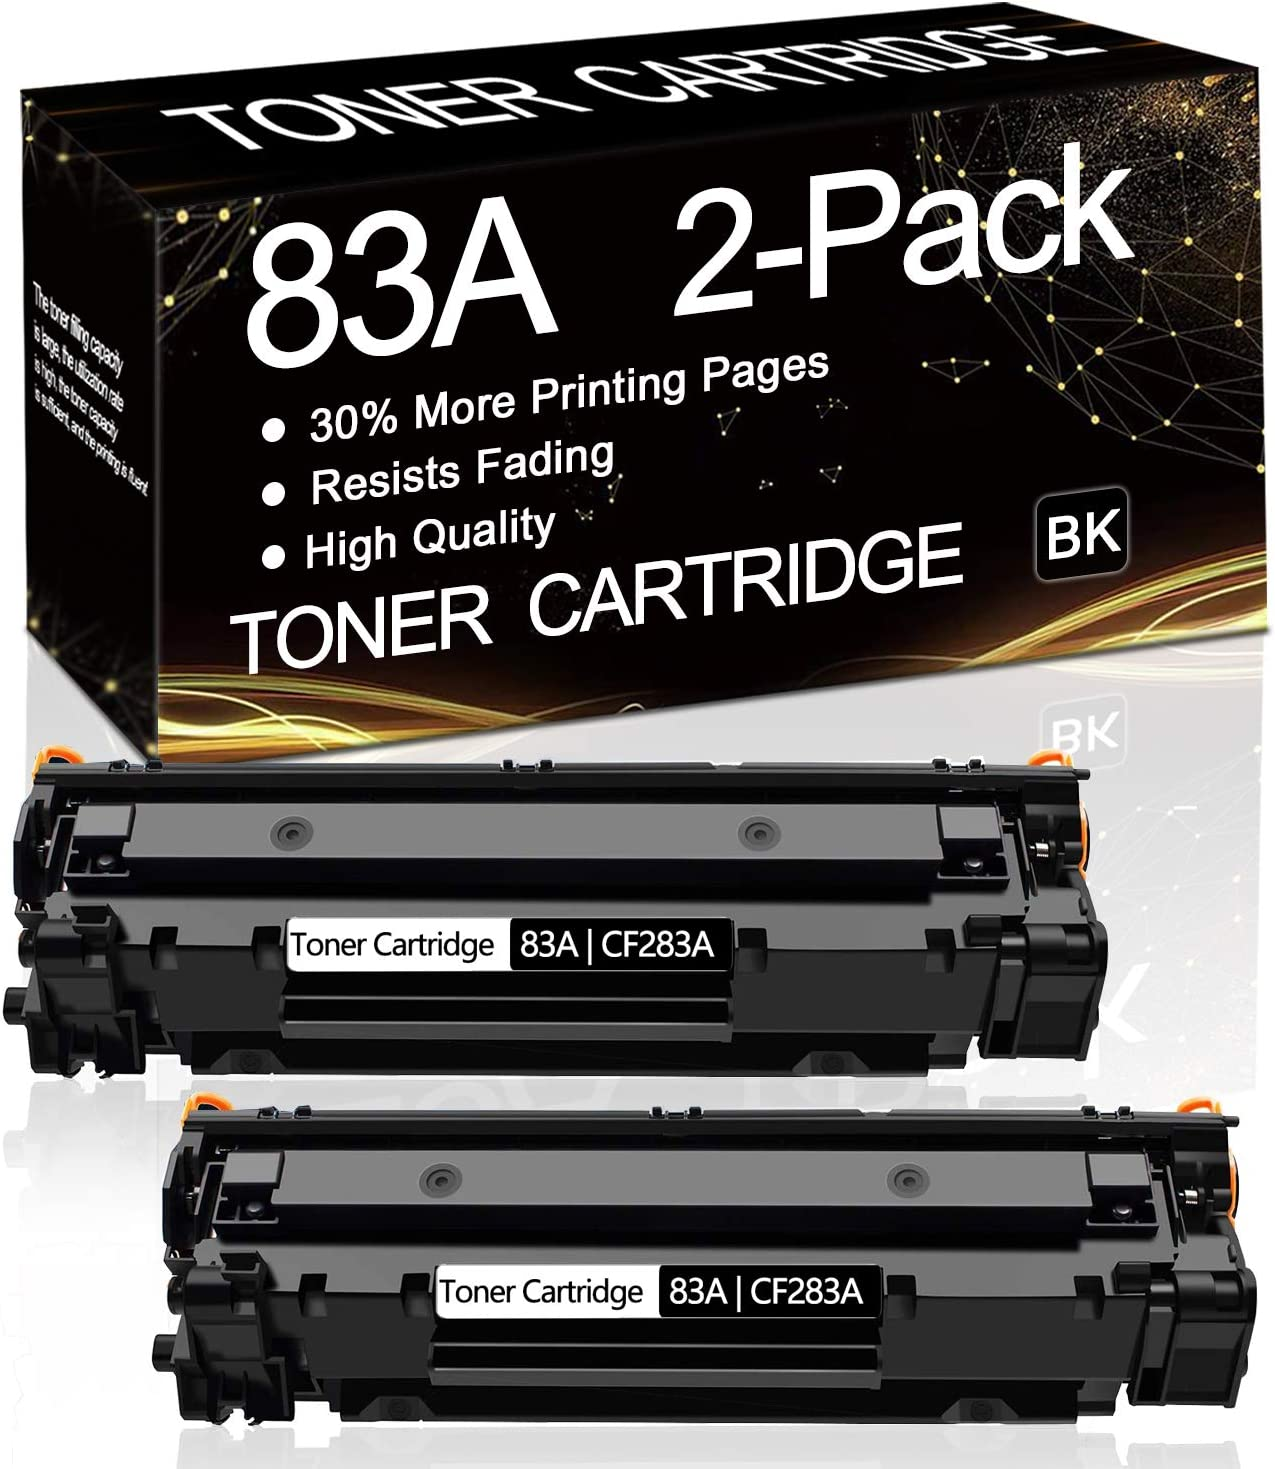 2-Pack (Black) 83A | CF283A Compatible Toner Cartridge Replacement for HP Laserjet Pro M201n M201dw MFP M225dn M225dw M125a M125nw M126a M126nw Printer,Sold by SinaToner.